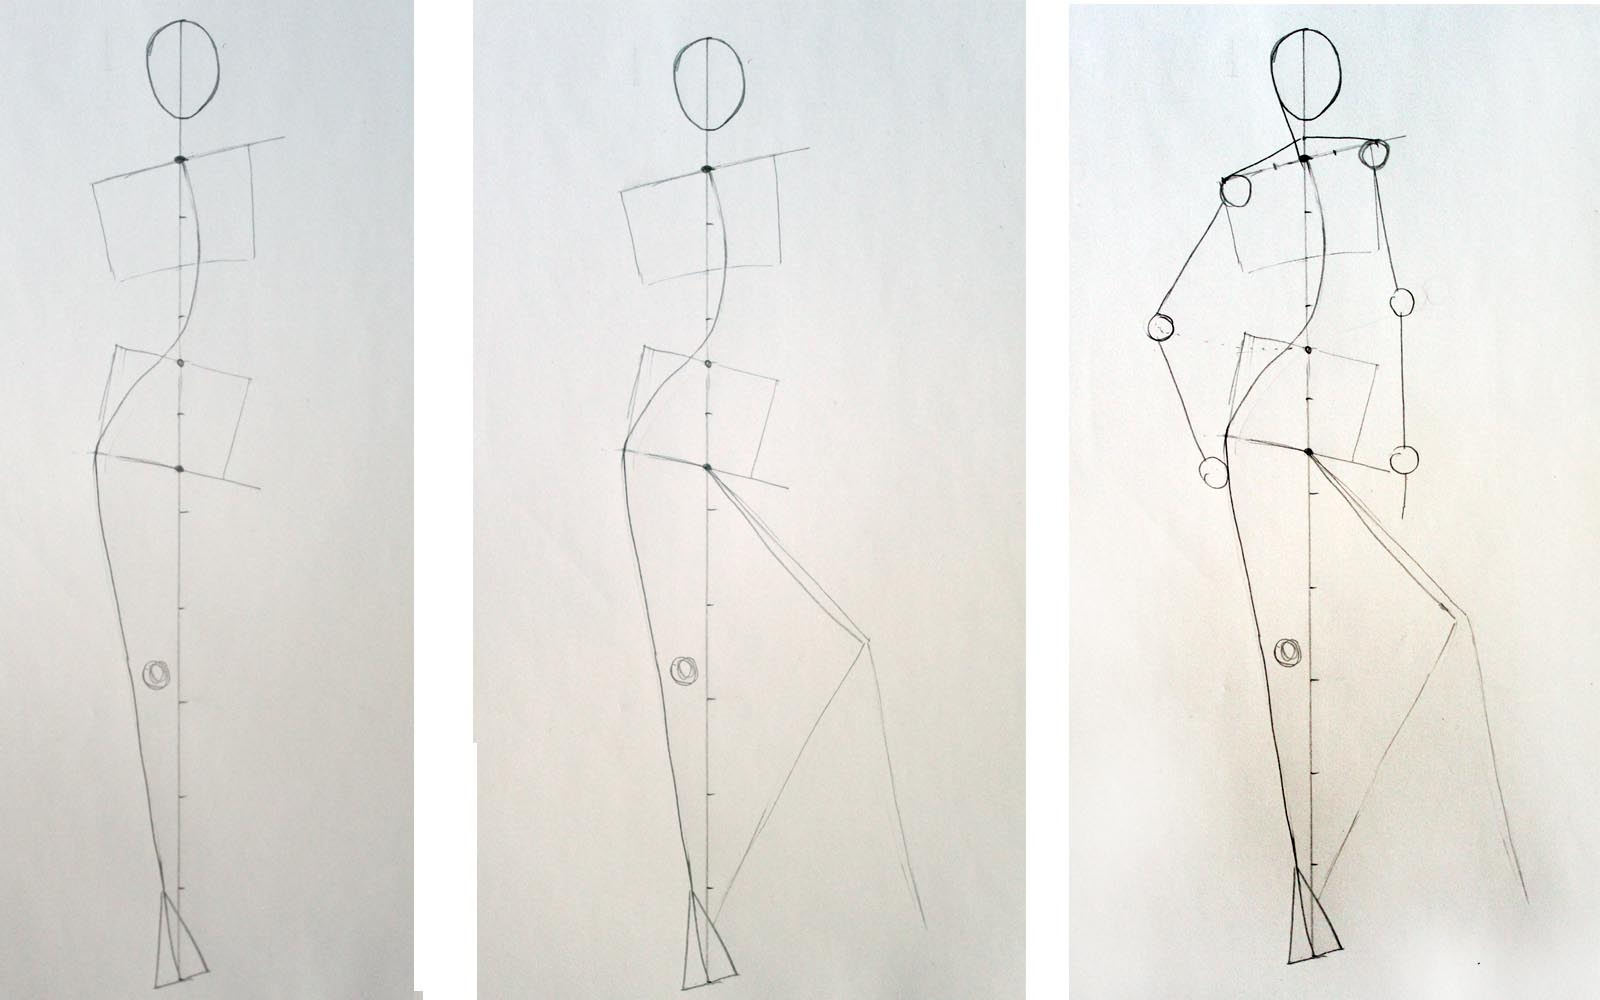 How to draw Relax standing pose in fashion drawing Step 3